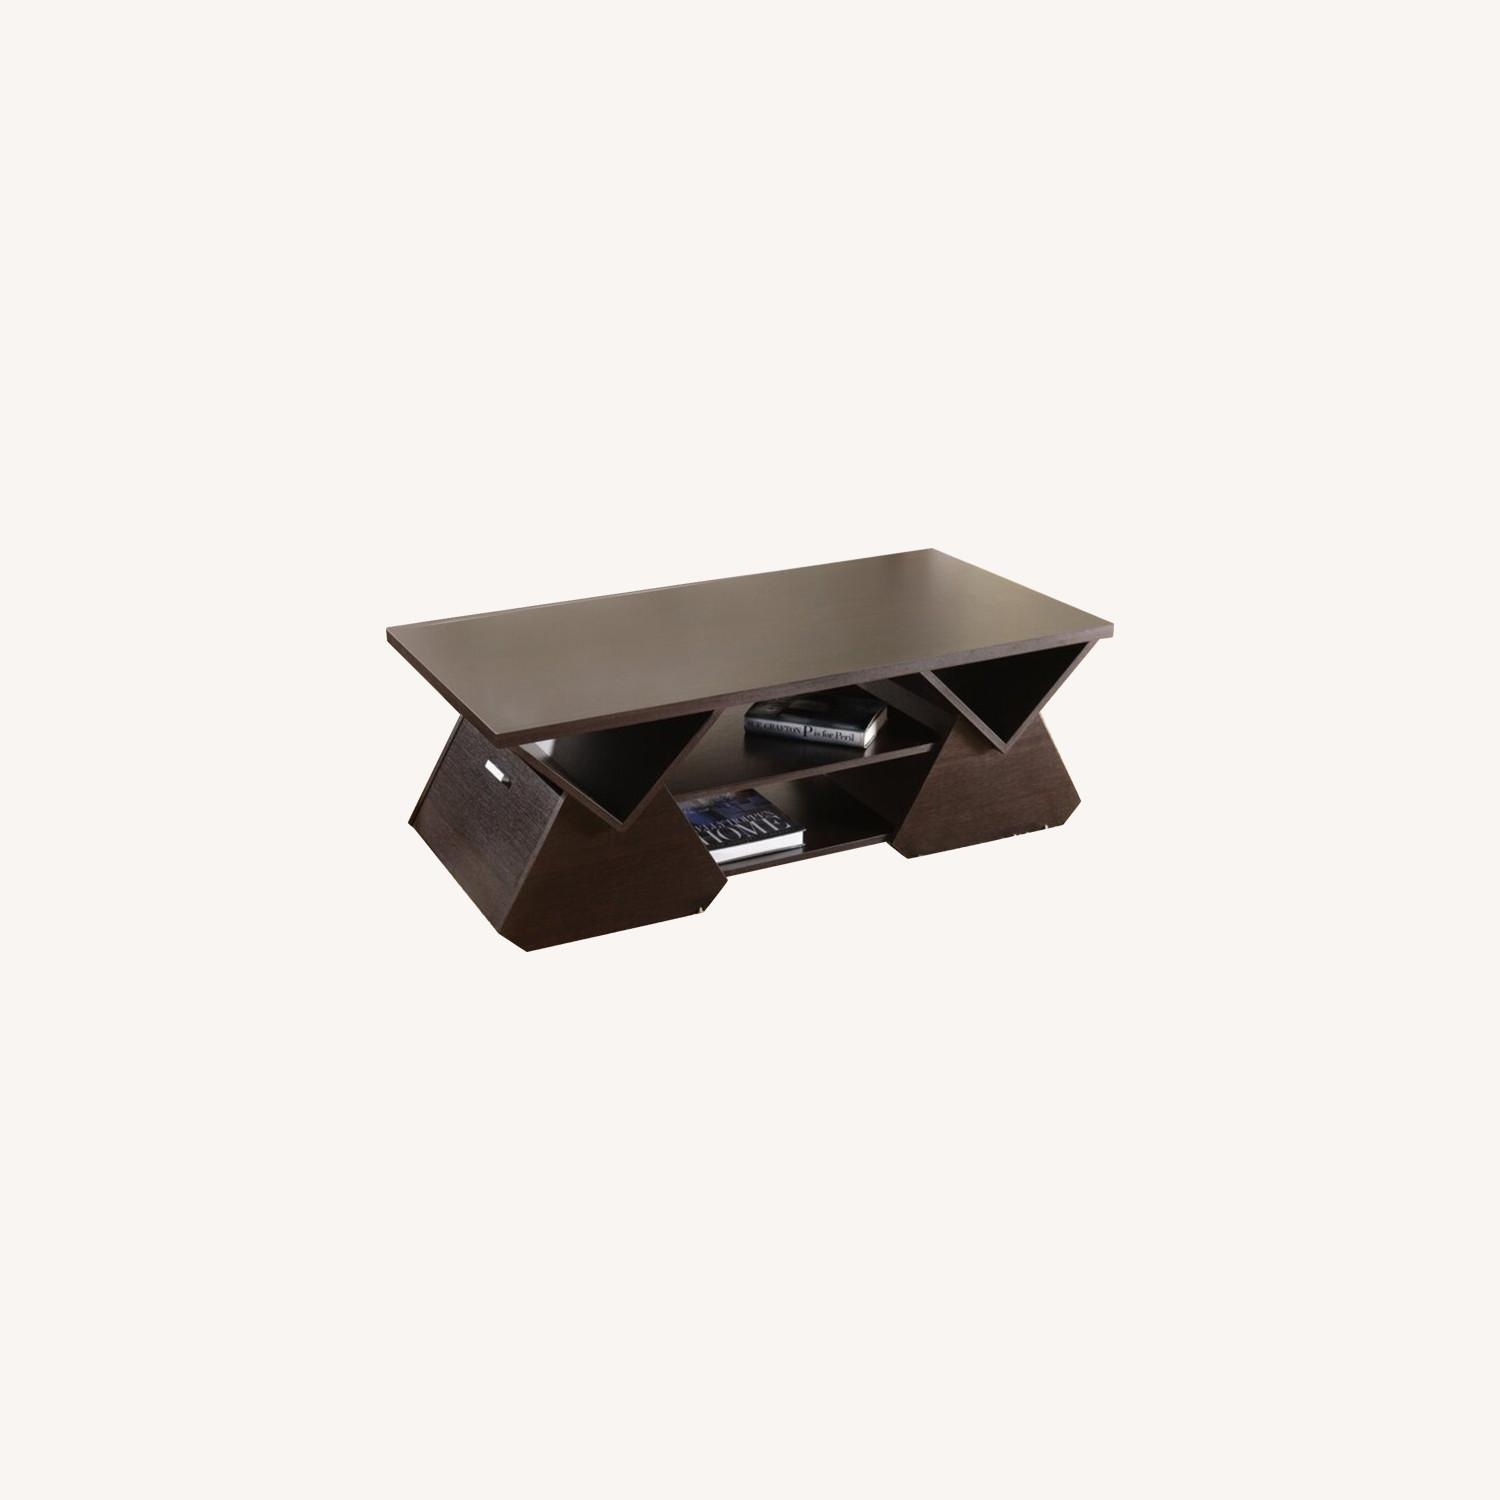 Wayfair Dark Brown Coffee Table with Storage - image-0